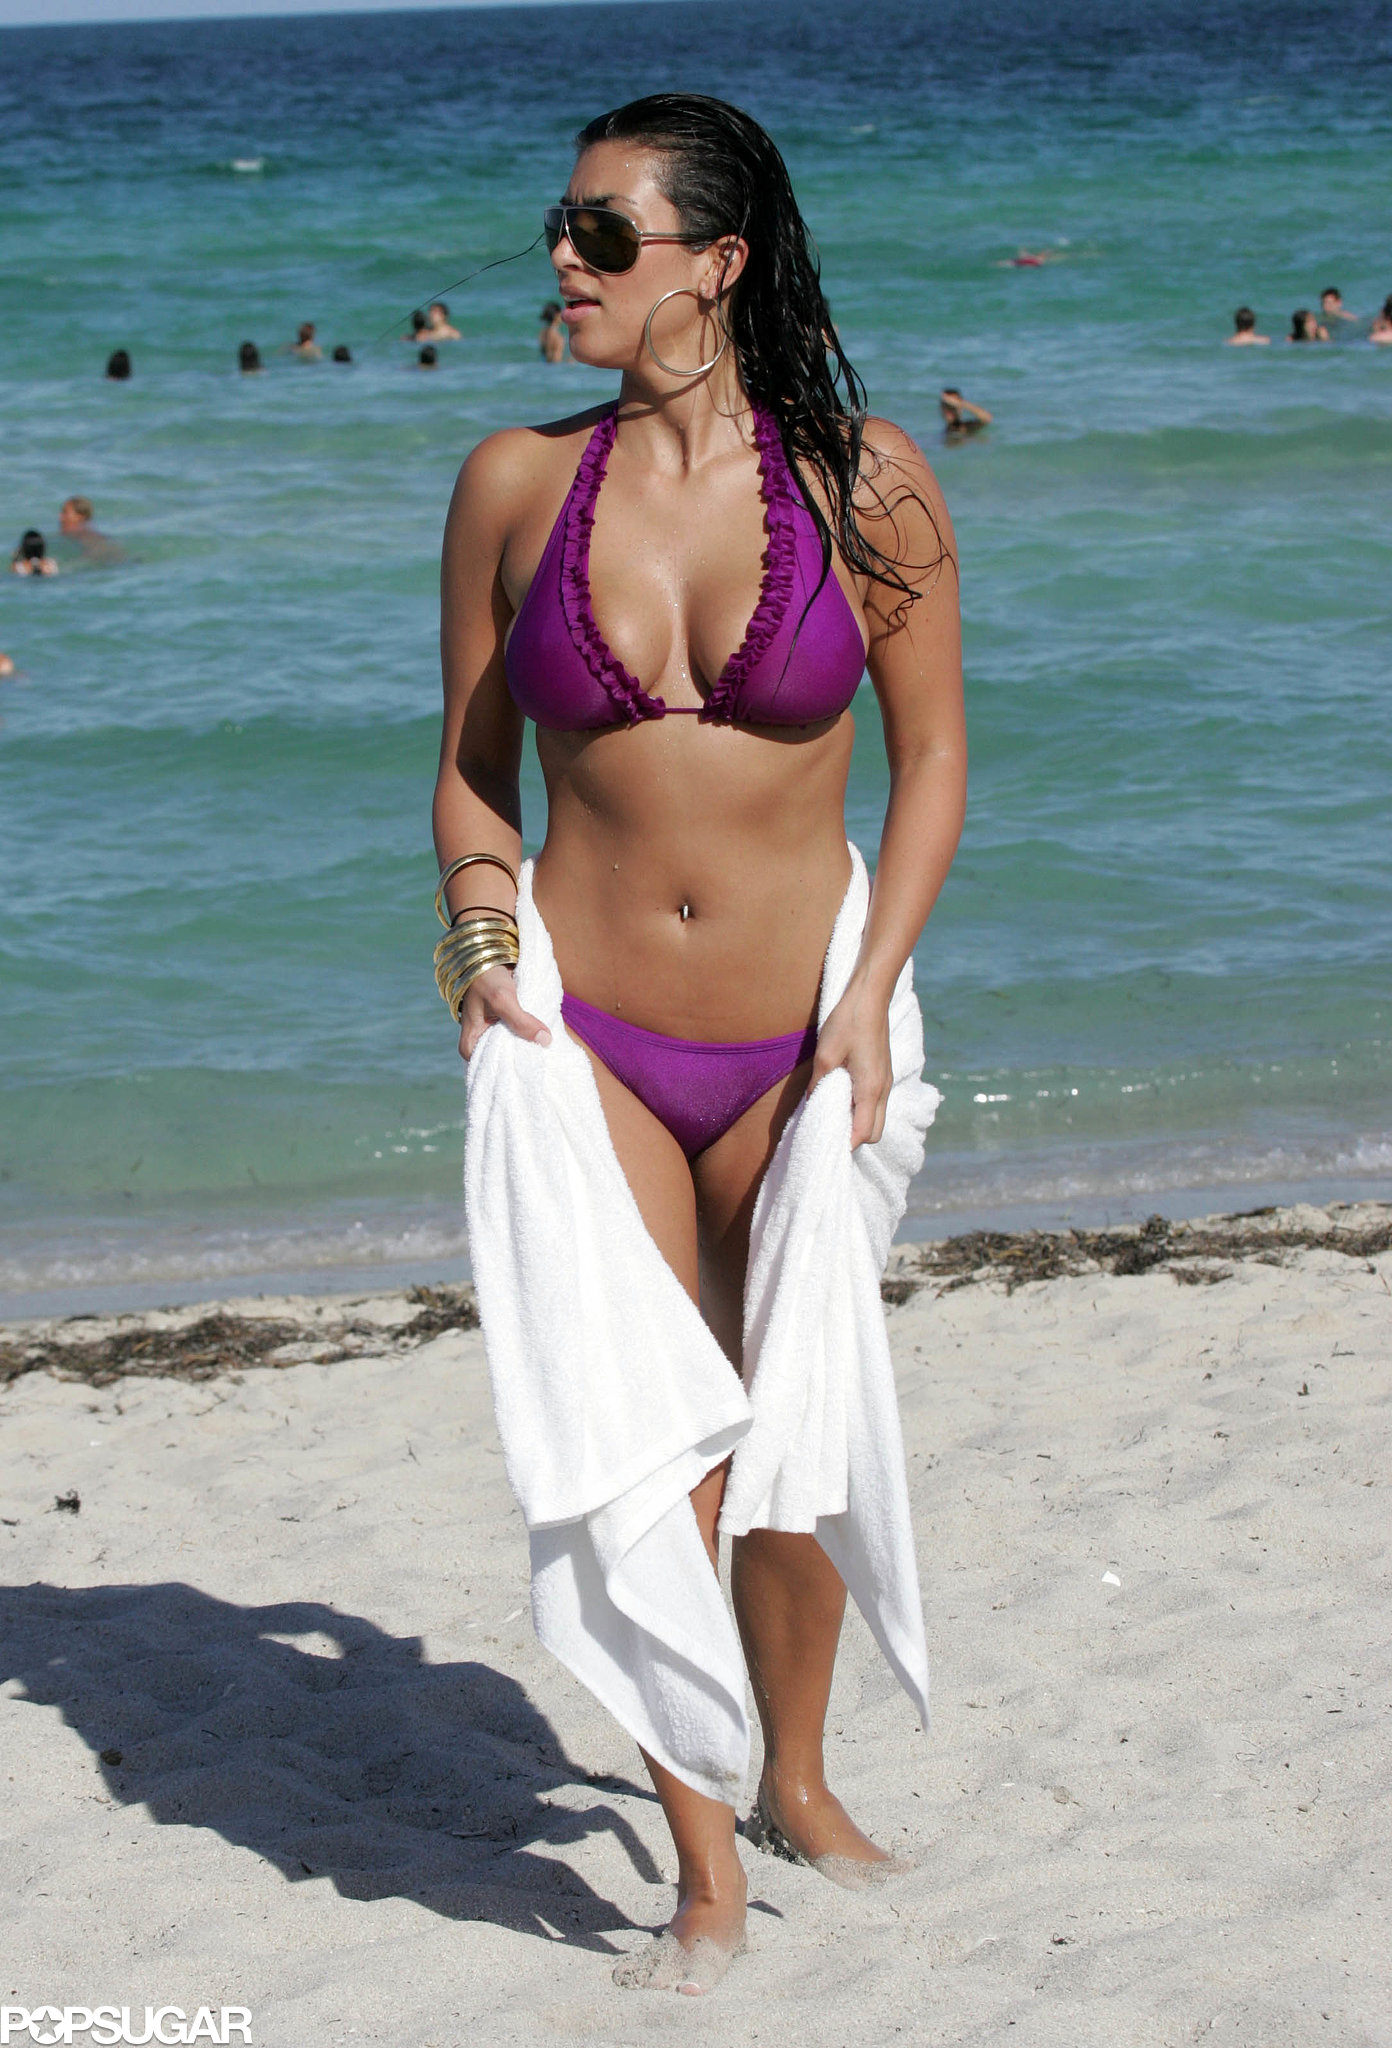 She hit the ocean in Miami Beach during a July 2007 trip with her sisters.